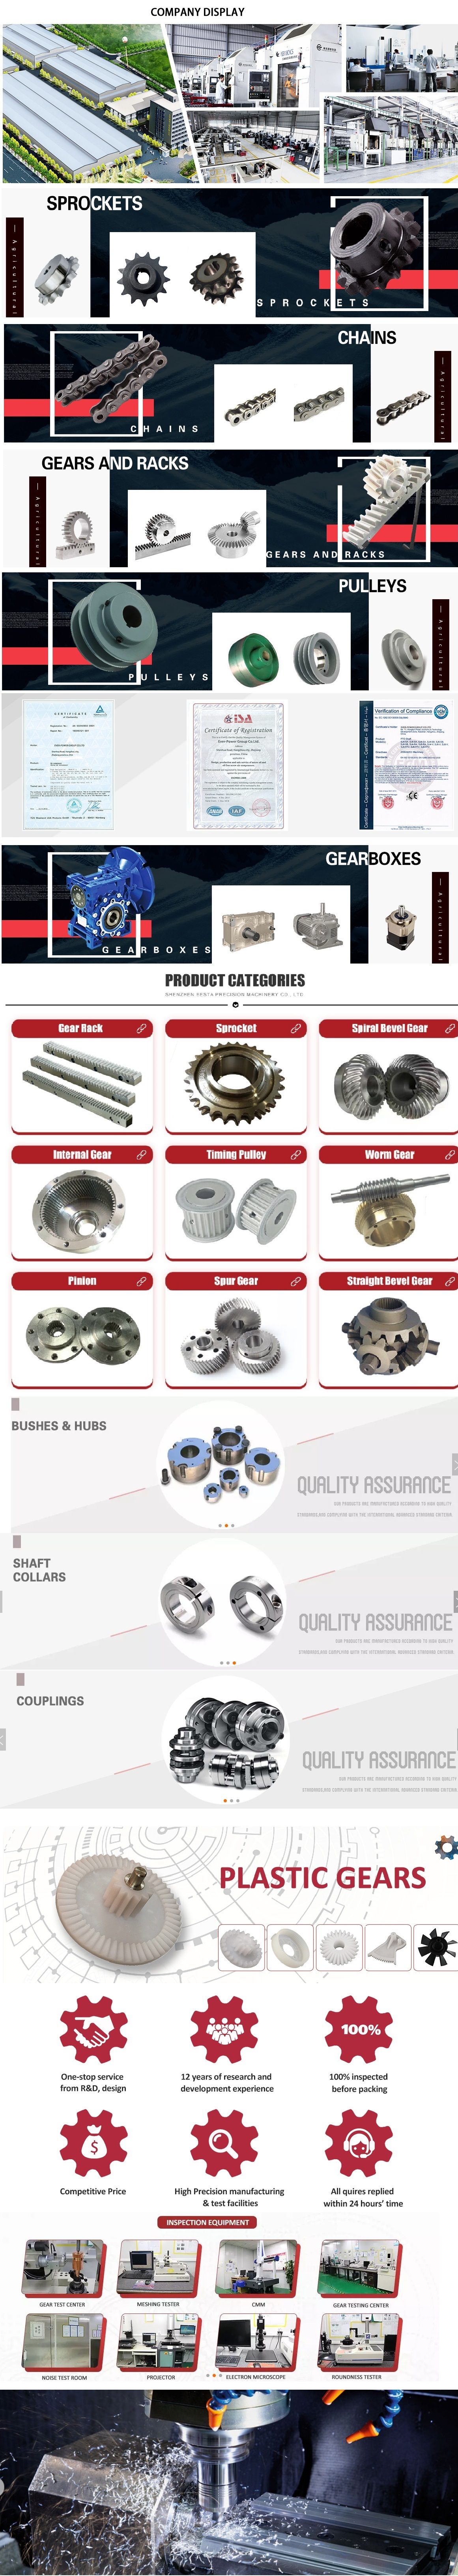 in Port Harcourt Nigeria  sales   price   shop   near me   near me shop   factory   supplier Teco R Series Foot Flange Mounted Hardened Helical Gear High Quality Gearbox with Ie2 Ie3 Motor manufacturer   best   Cost   Custom   Cheap   wholesaler